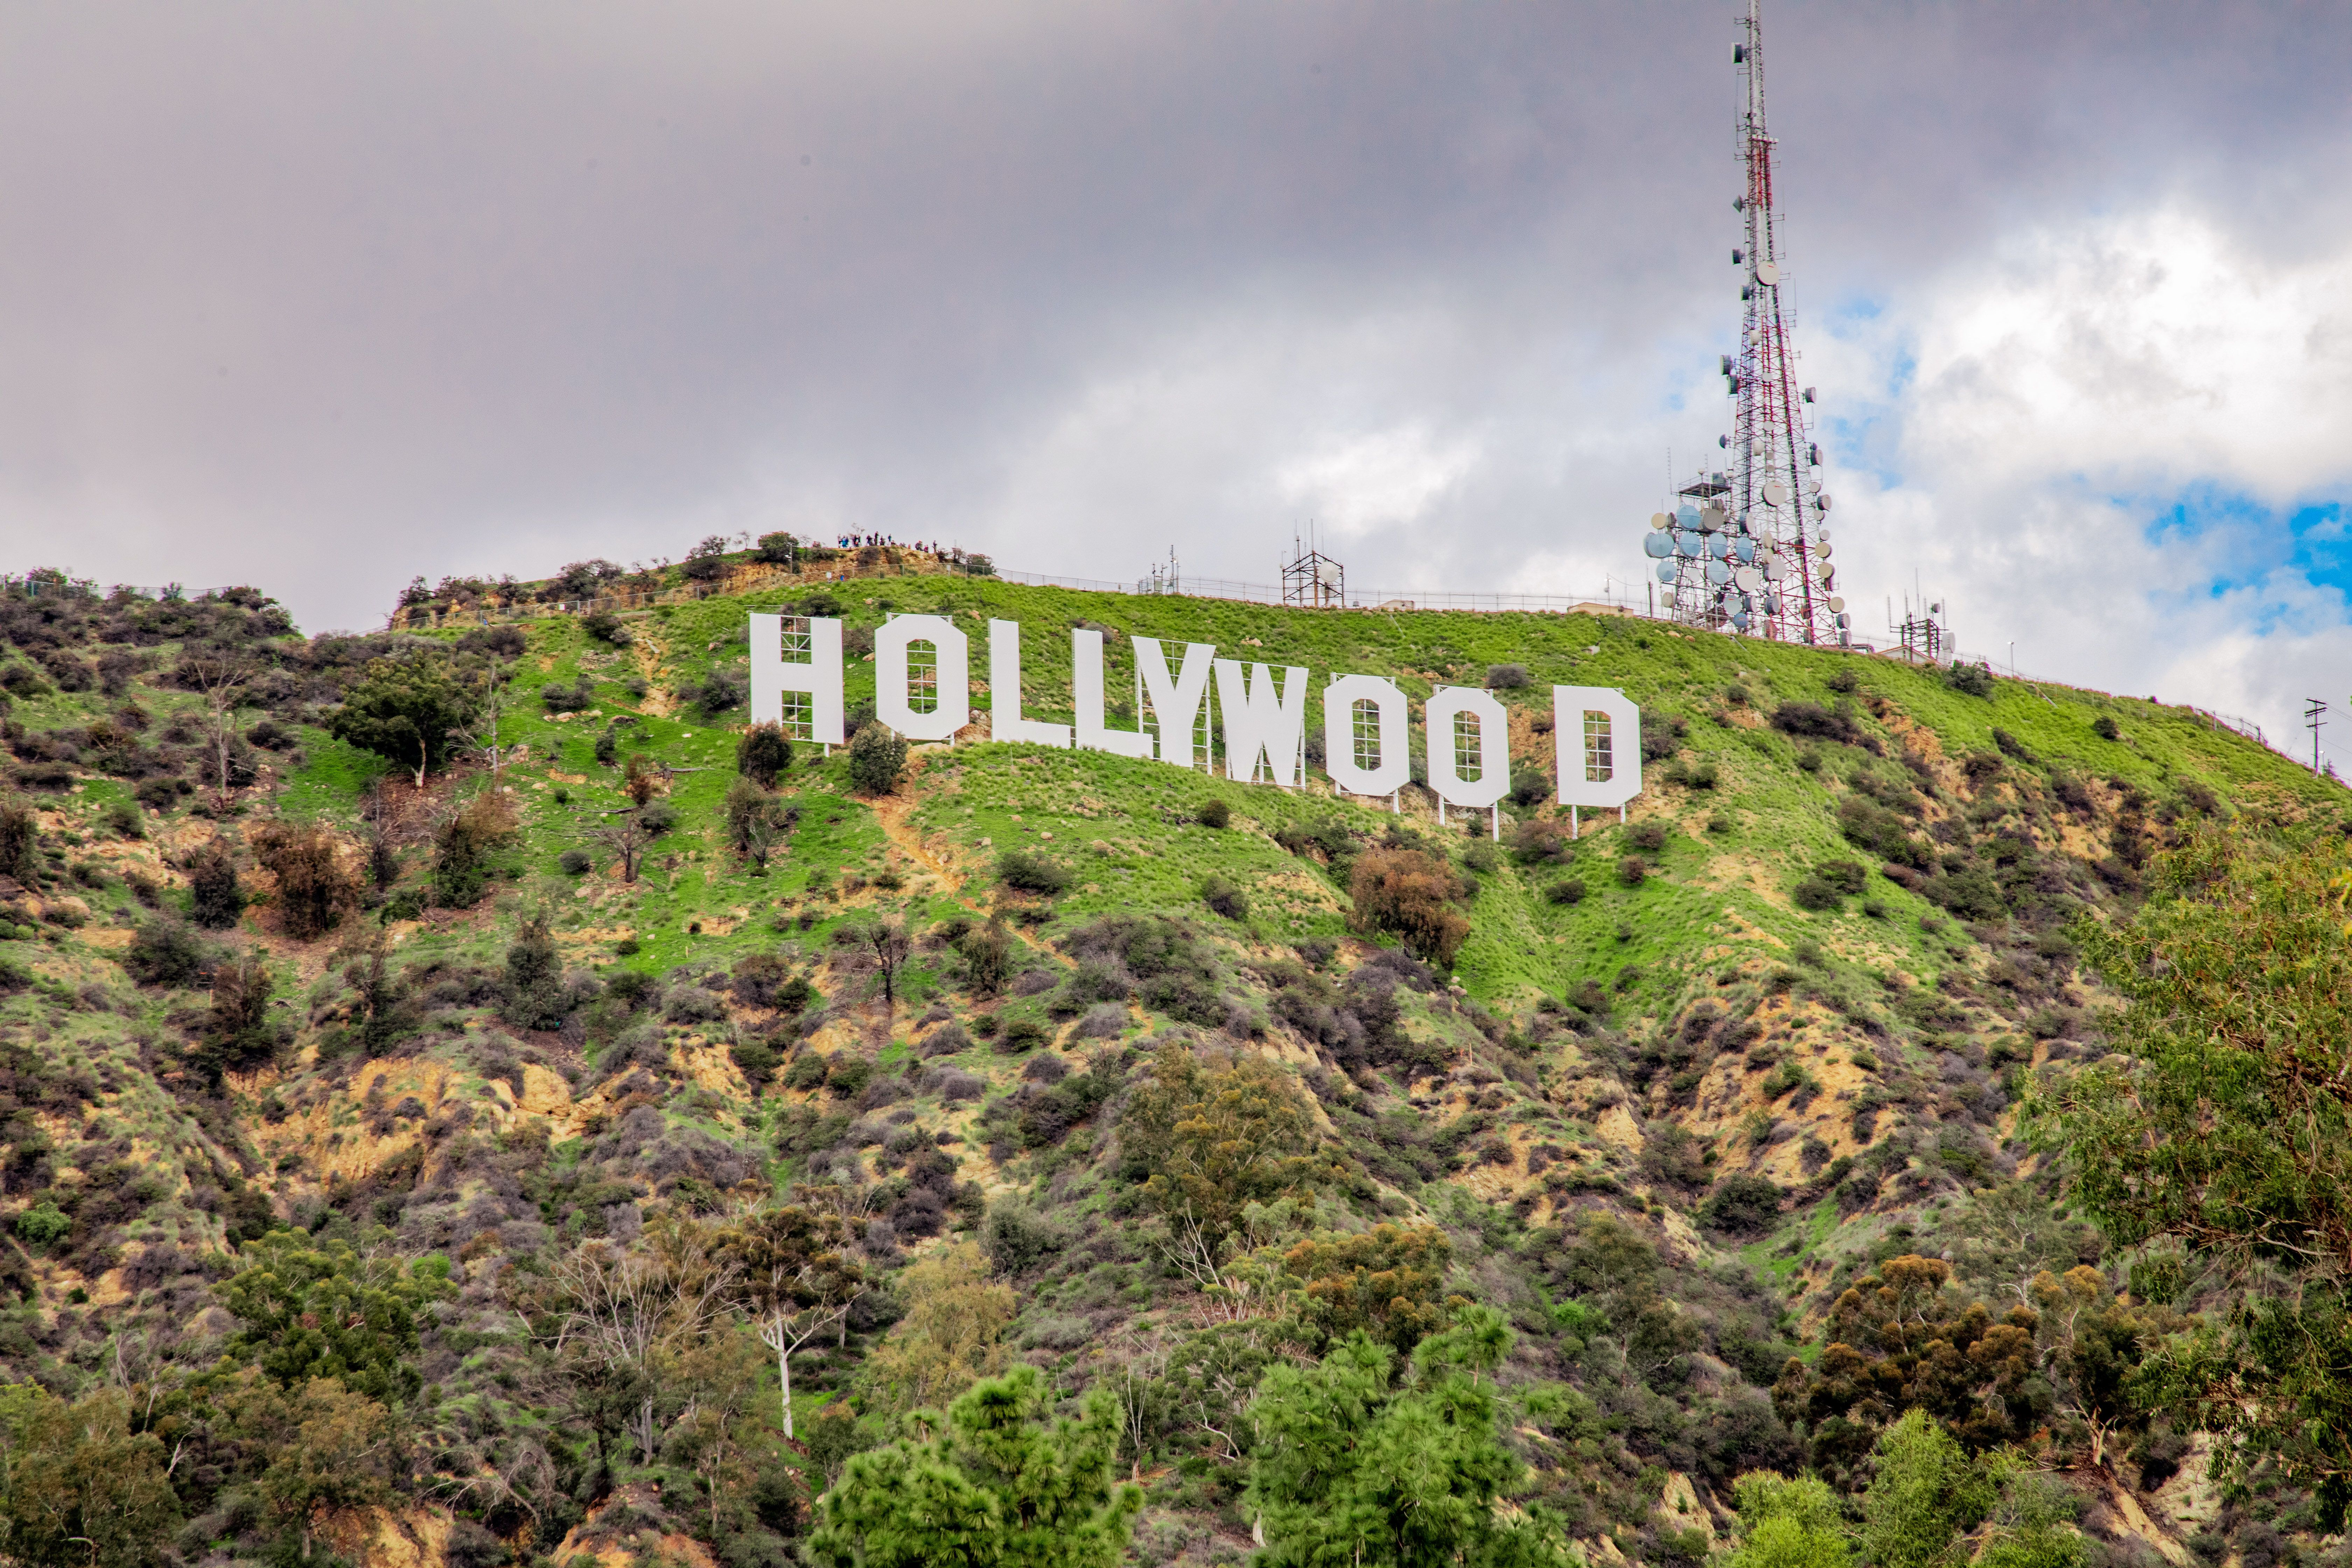 The Hollywood sign up on the hill